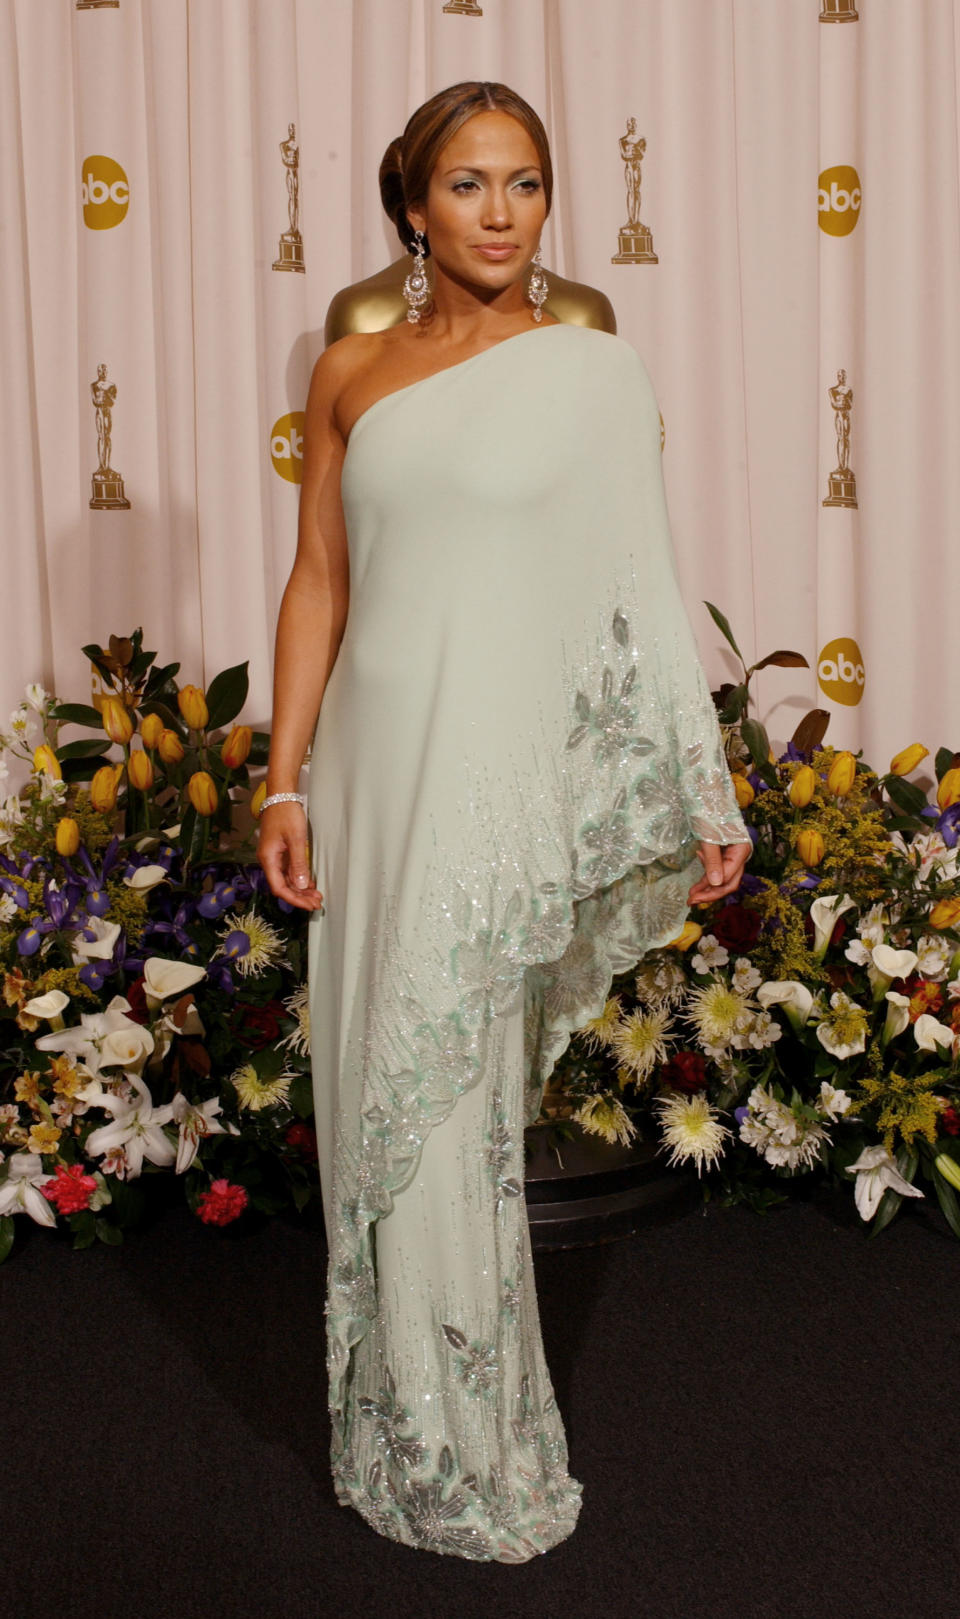 <p>Lopez and then-fiancé Ben Affleck were the hottest couple in Hollywood at the 2003 Academy Awards. With all eyes on Bennifer, Lopez wowed in vintage mint-green sari style gown inspired by a look previously worn by her style icon, Jackie Kennedy Onassis.</p>